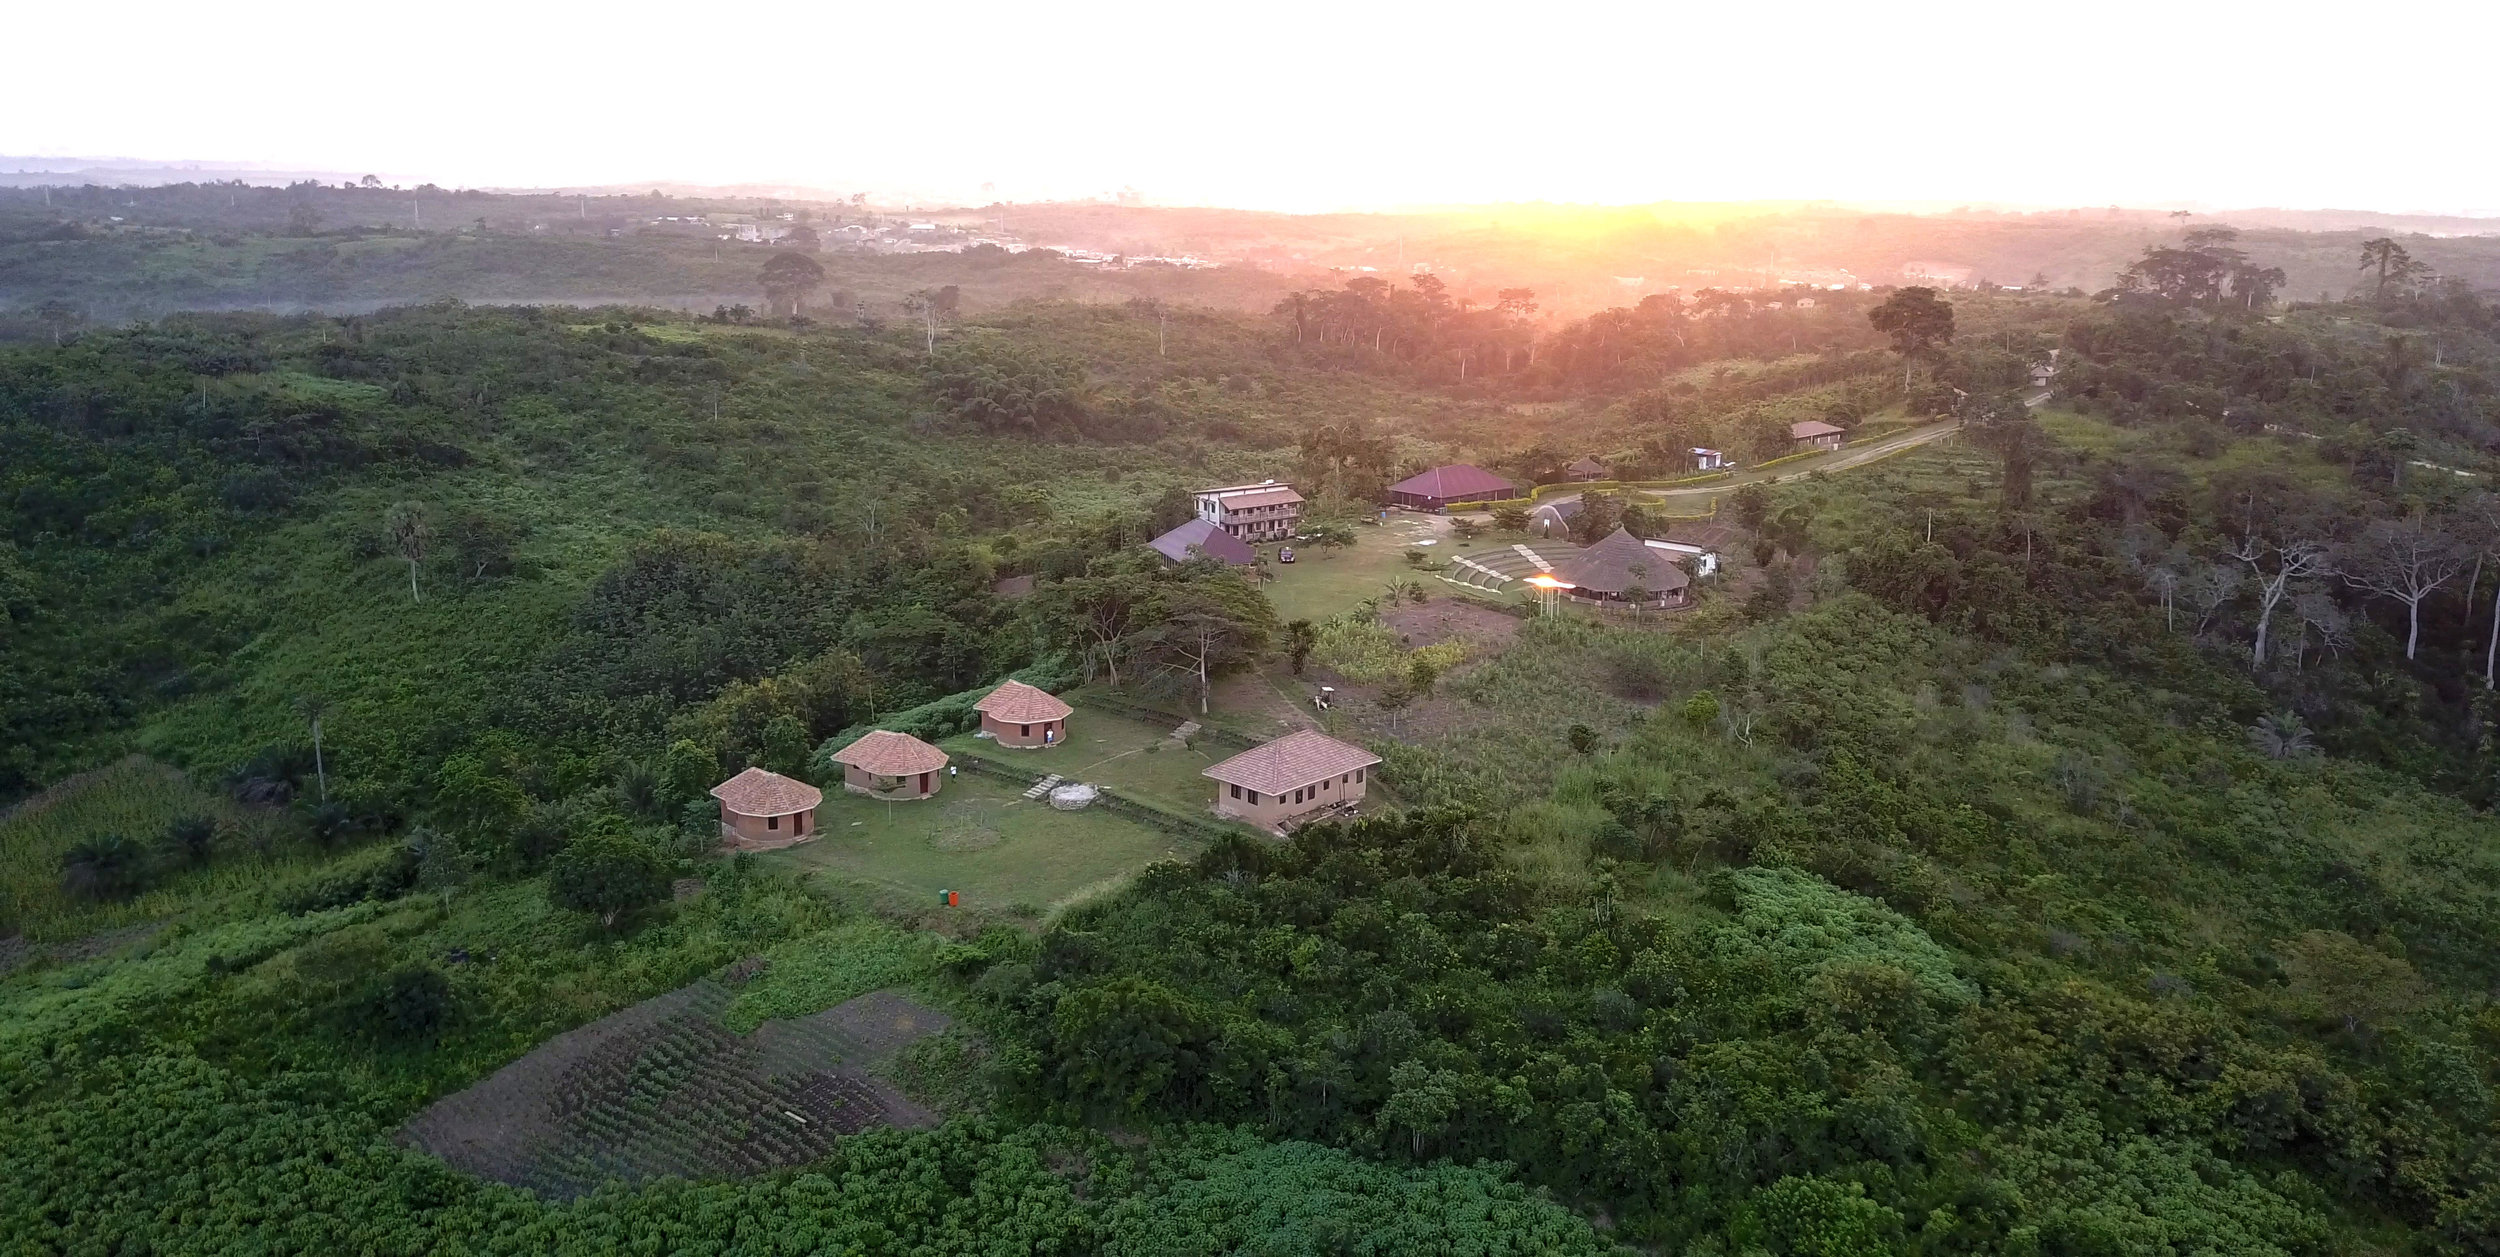 I also got a drone for the trip! Been learning how to fly… This is above Unity Eco Village in Ghana.